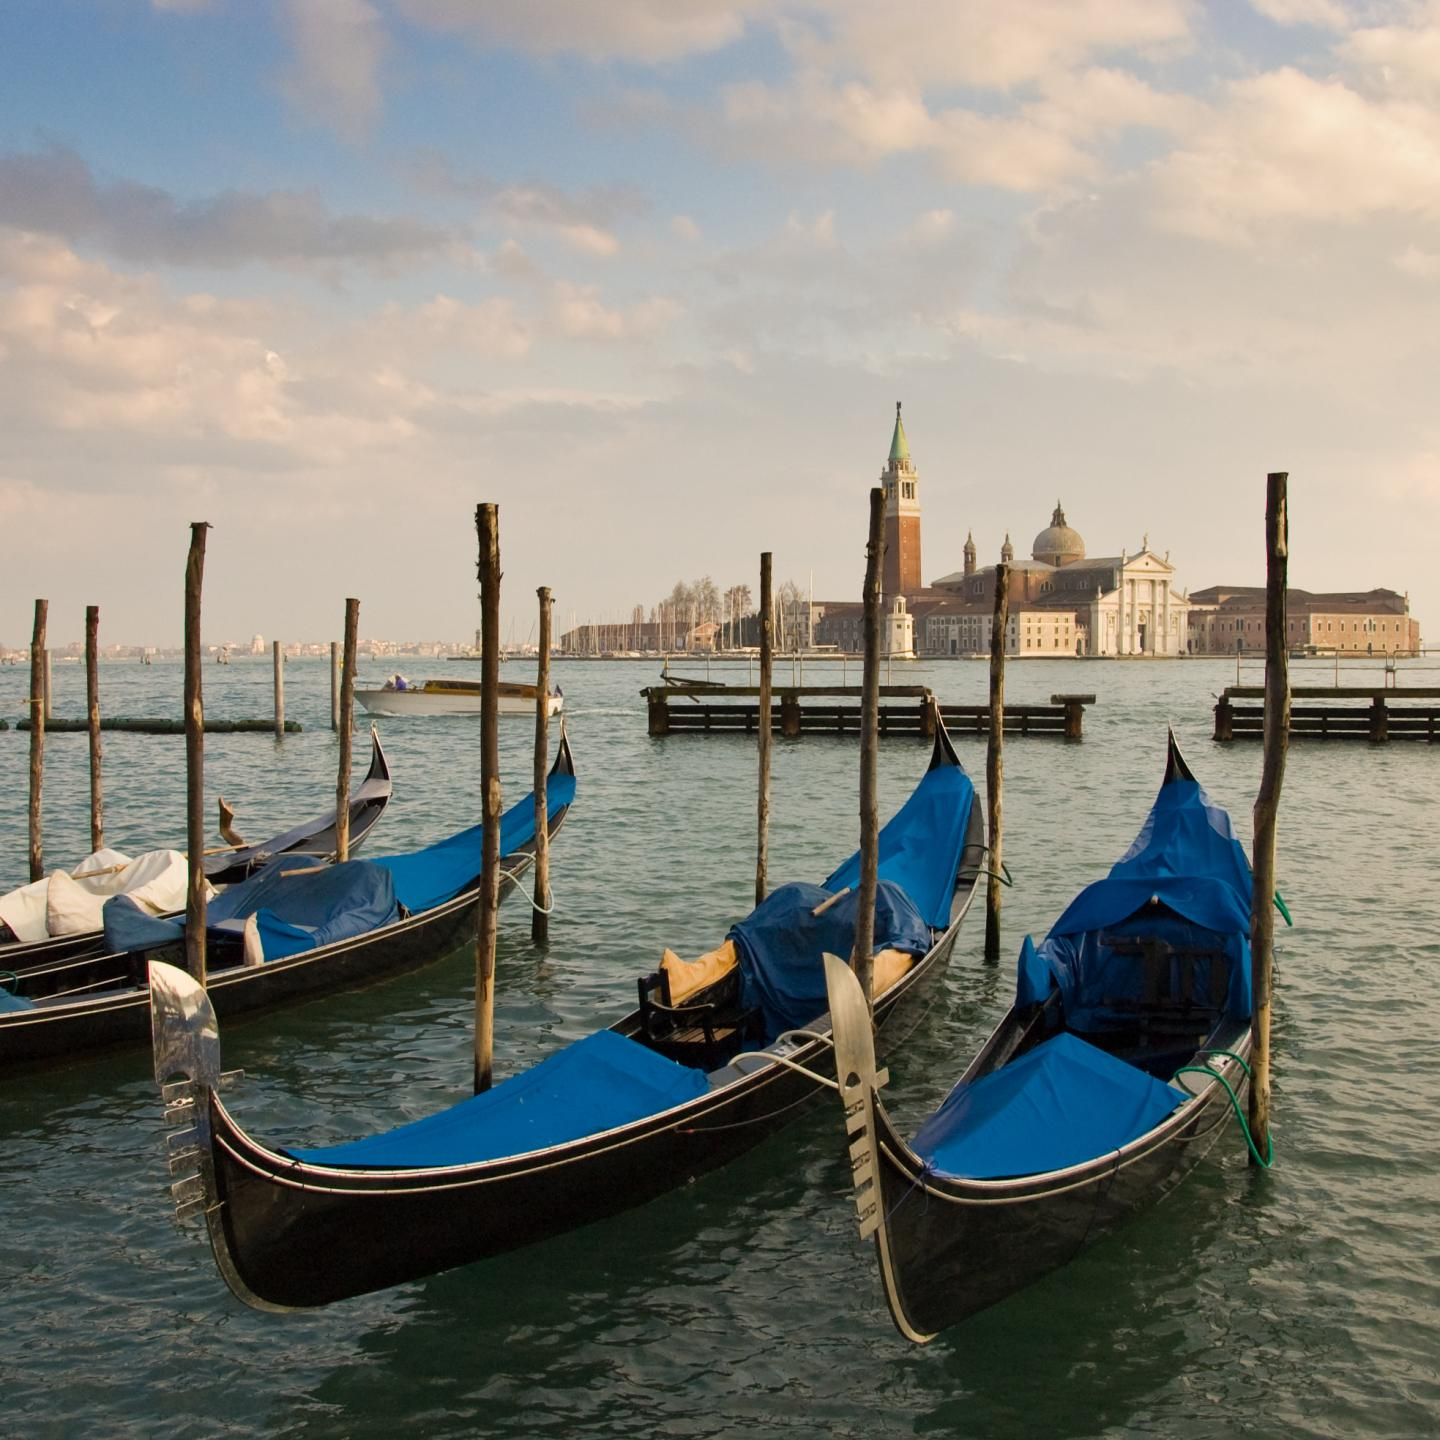 Gondolas in Venice at sunset photographed by teens on summer travel photography tour